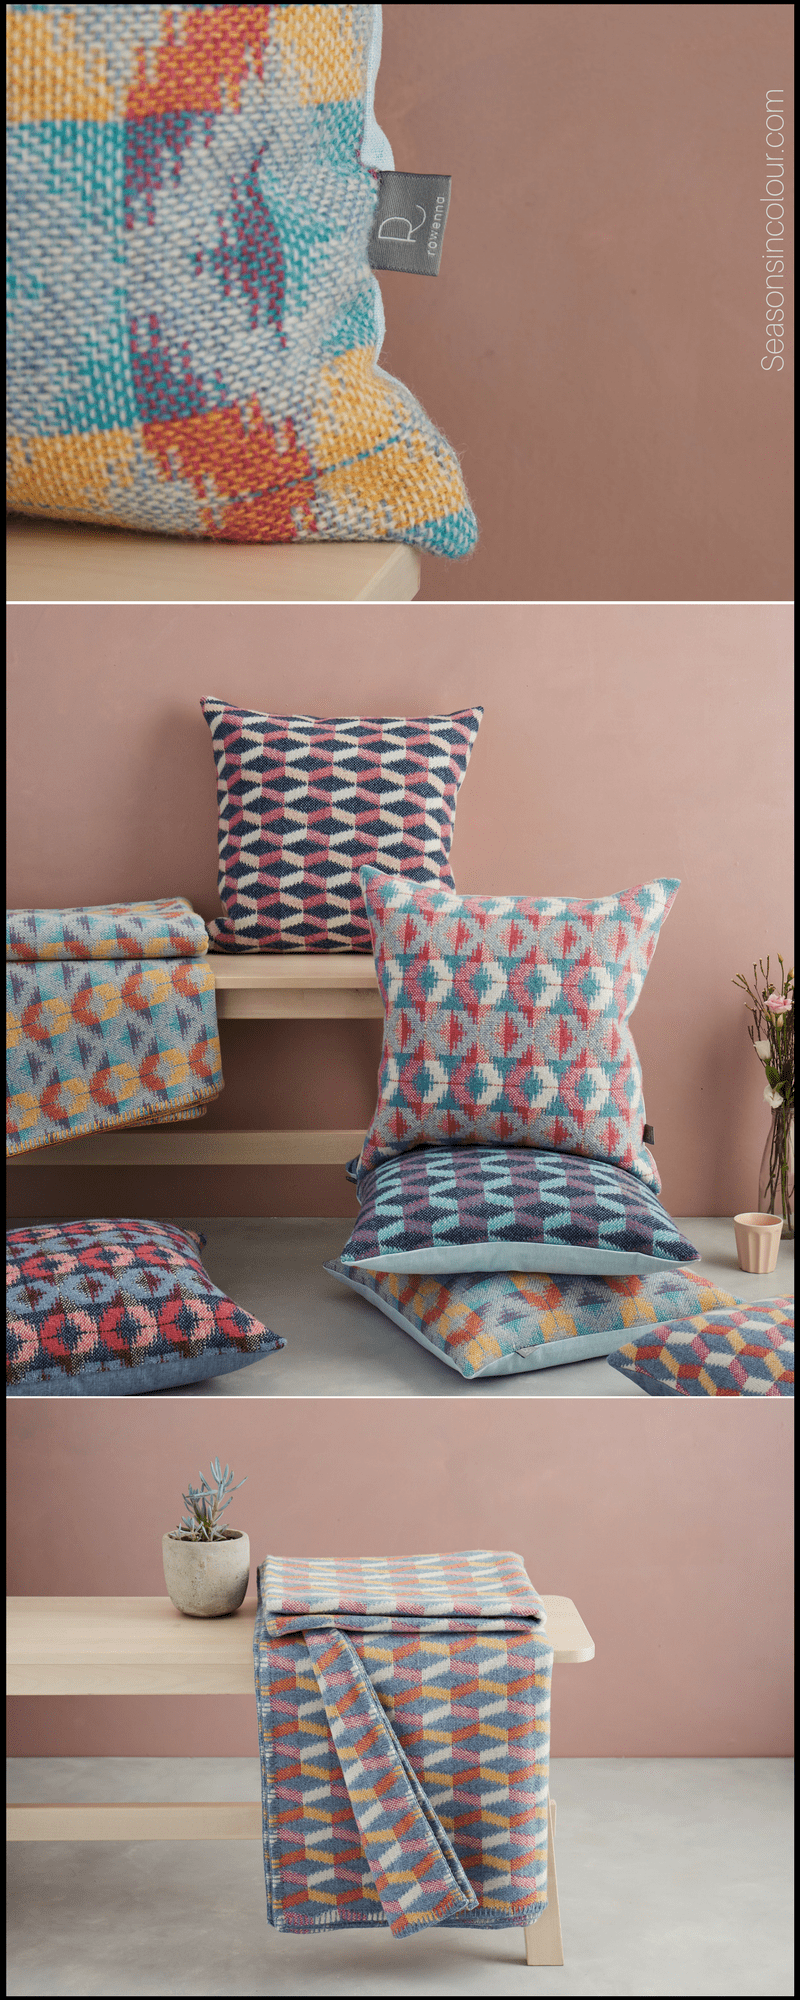 cushions and throws in colourful geometric patterns by Rowenna Mason. Interior decor ideas